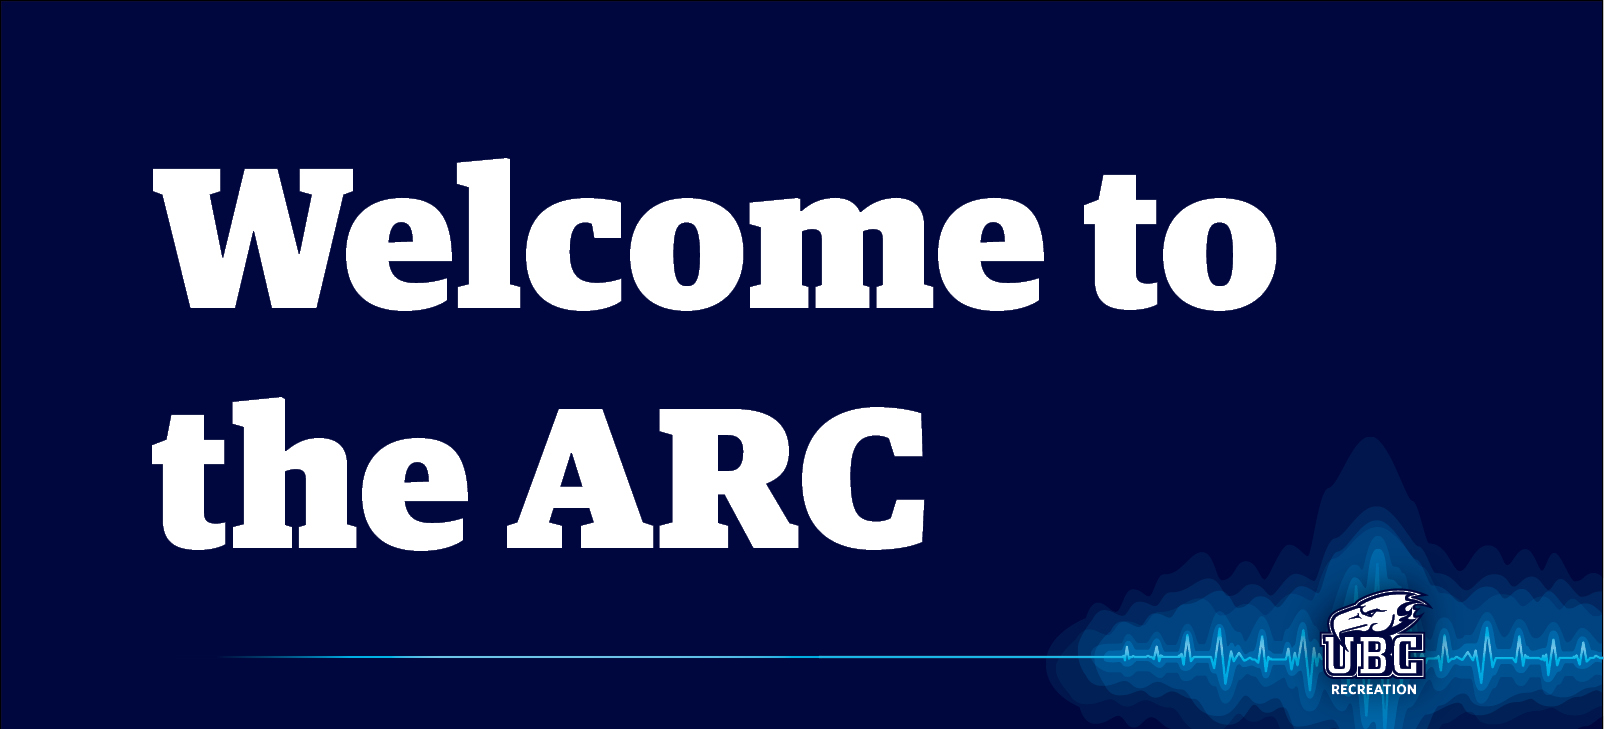 ARC Web Banner - Welcome to the ARC